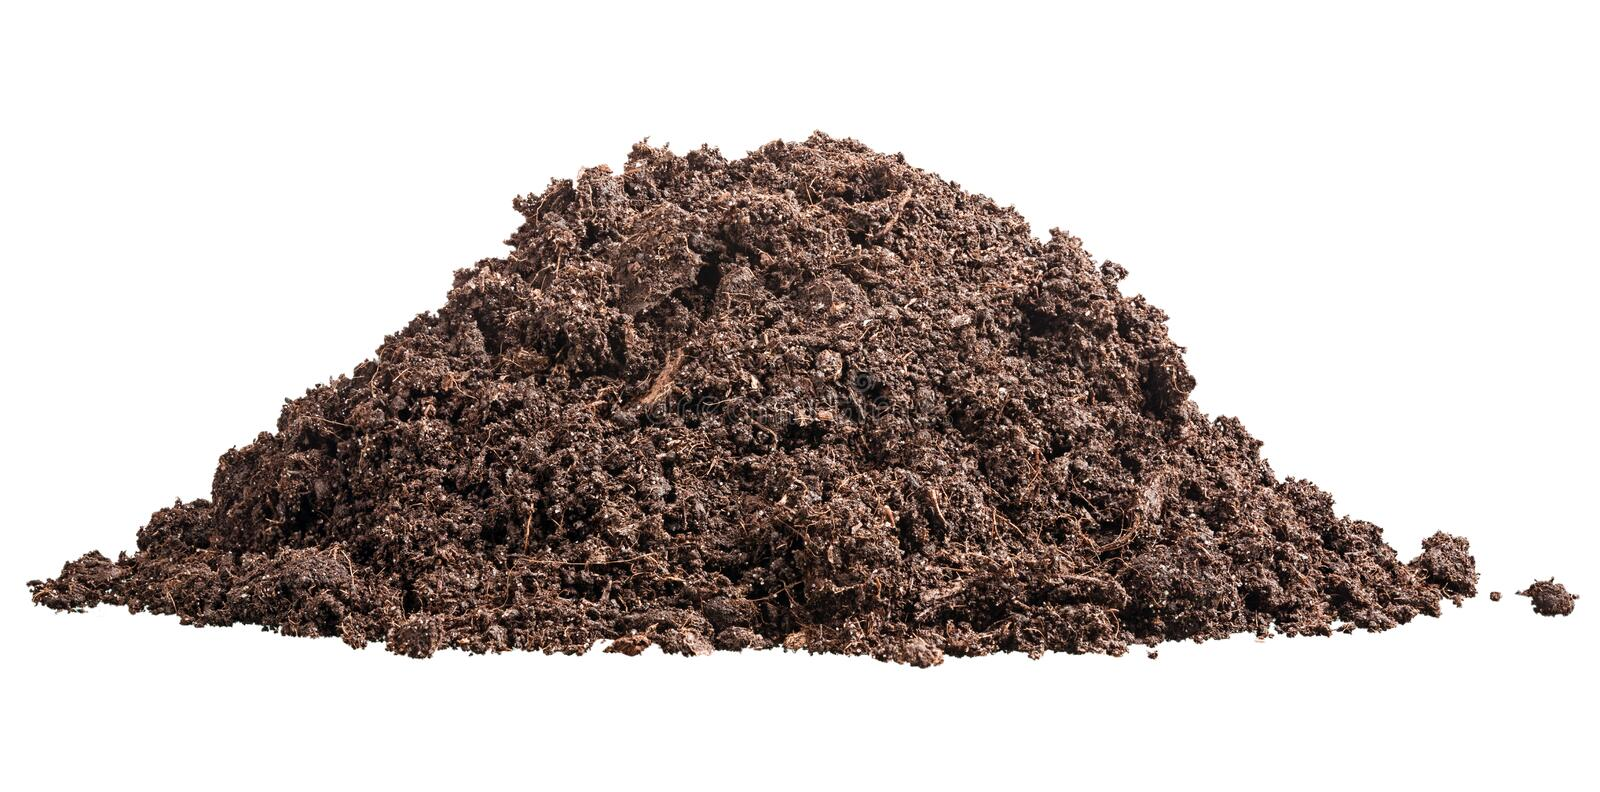 Pile of soil stock photography